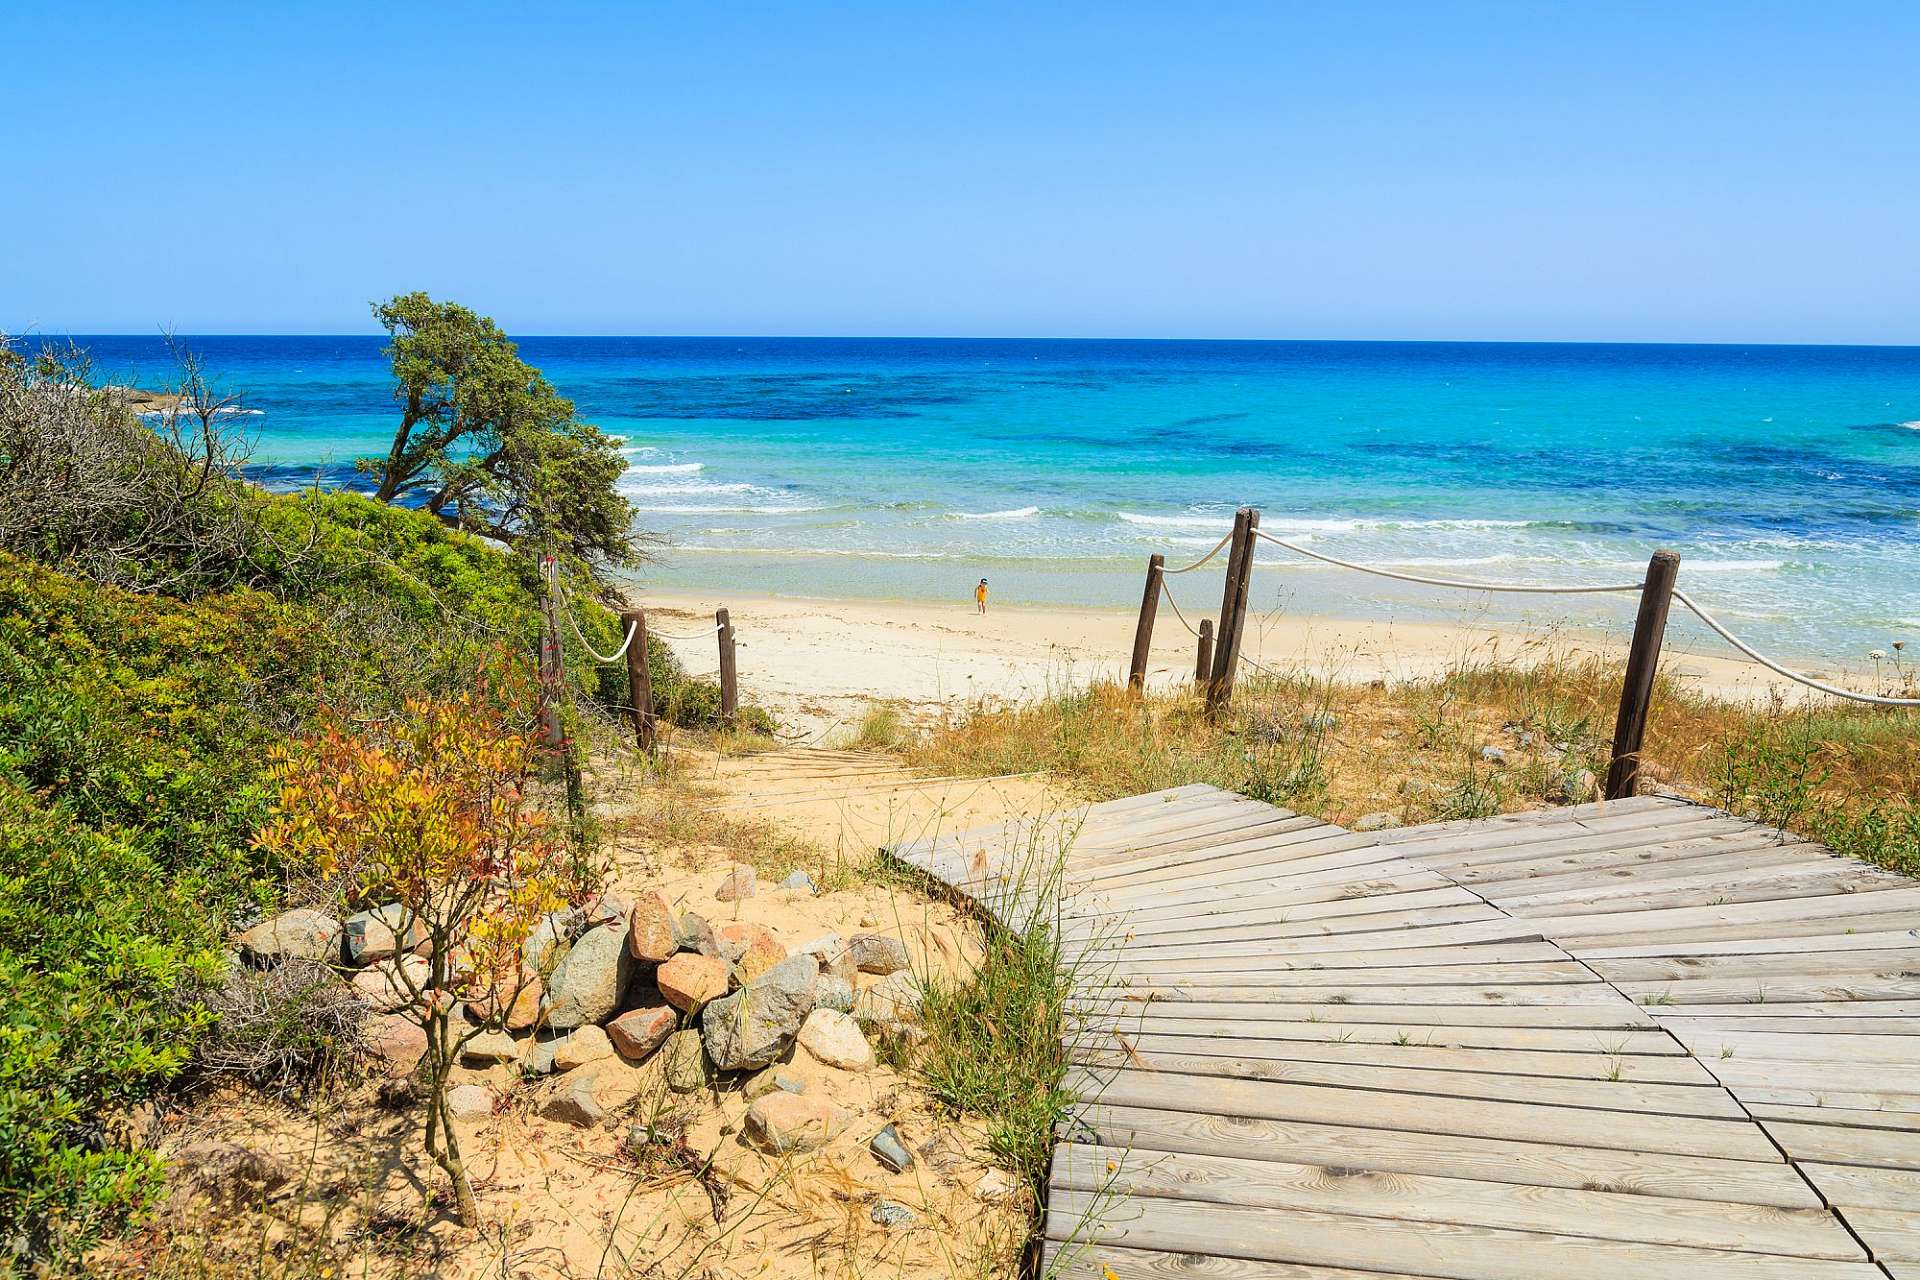 Natural sandy beaches: Costa Rei